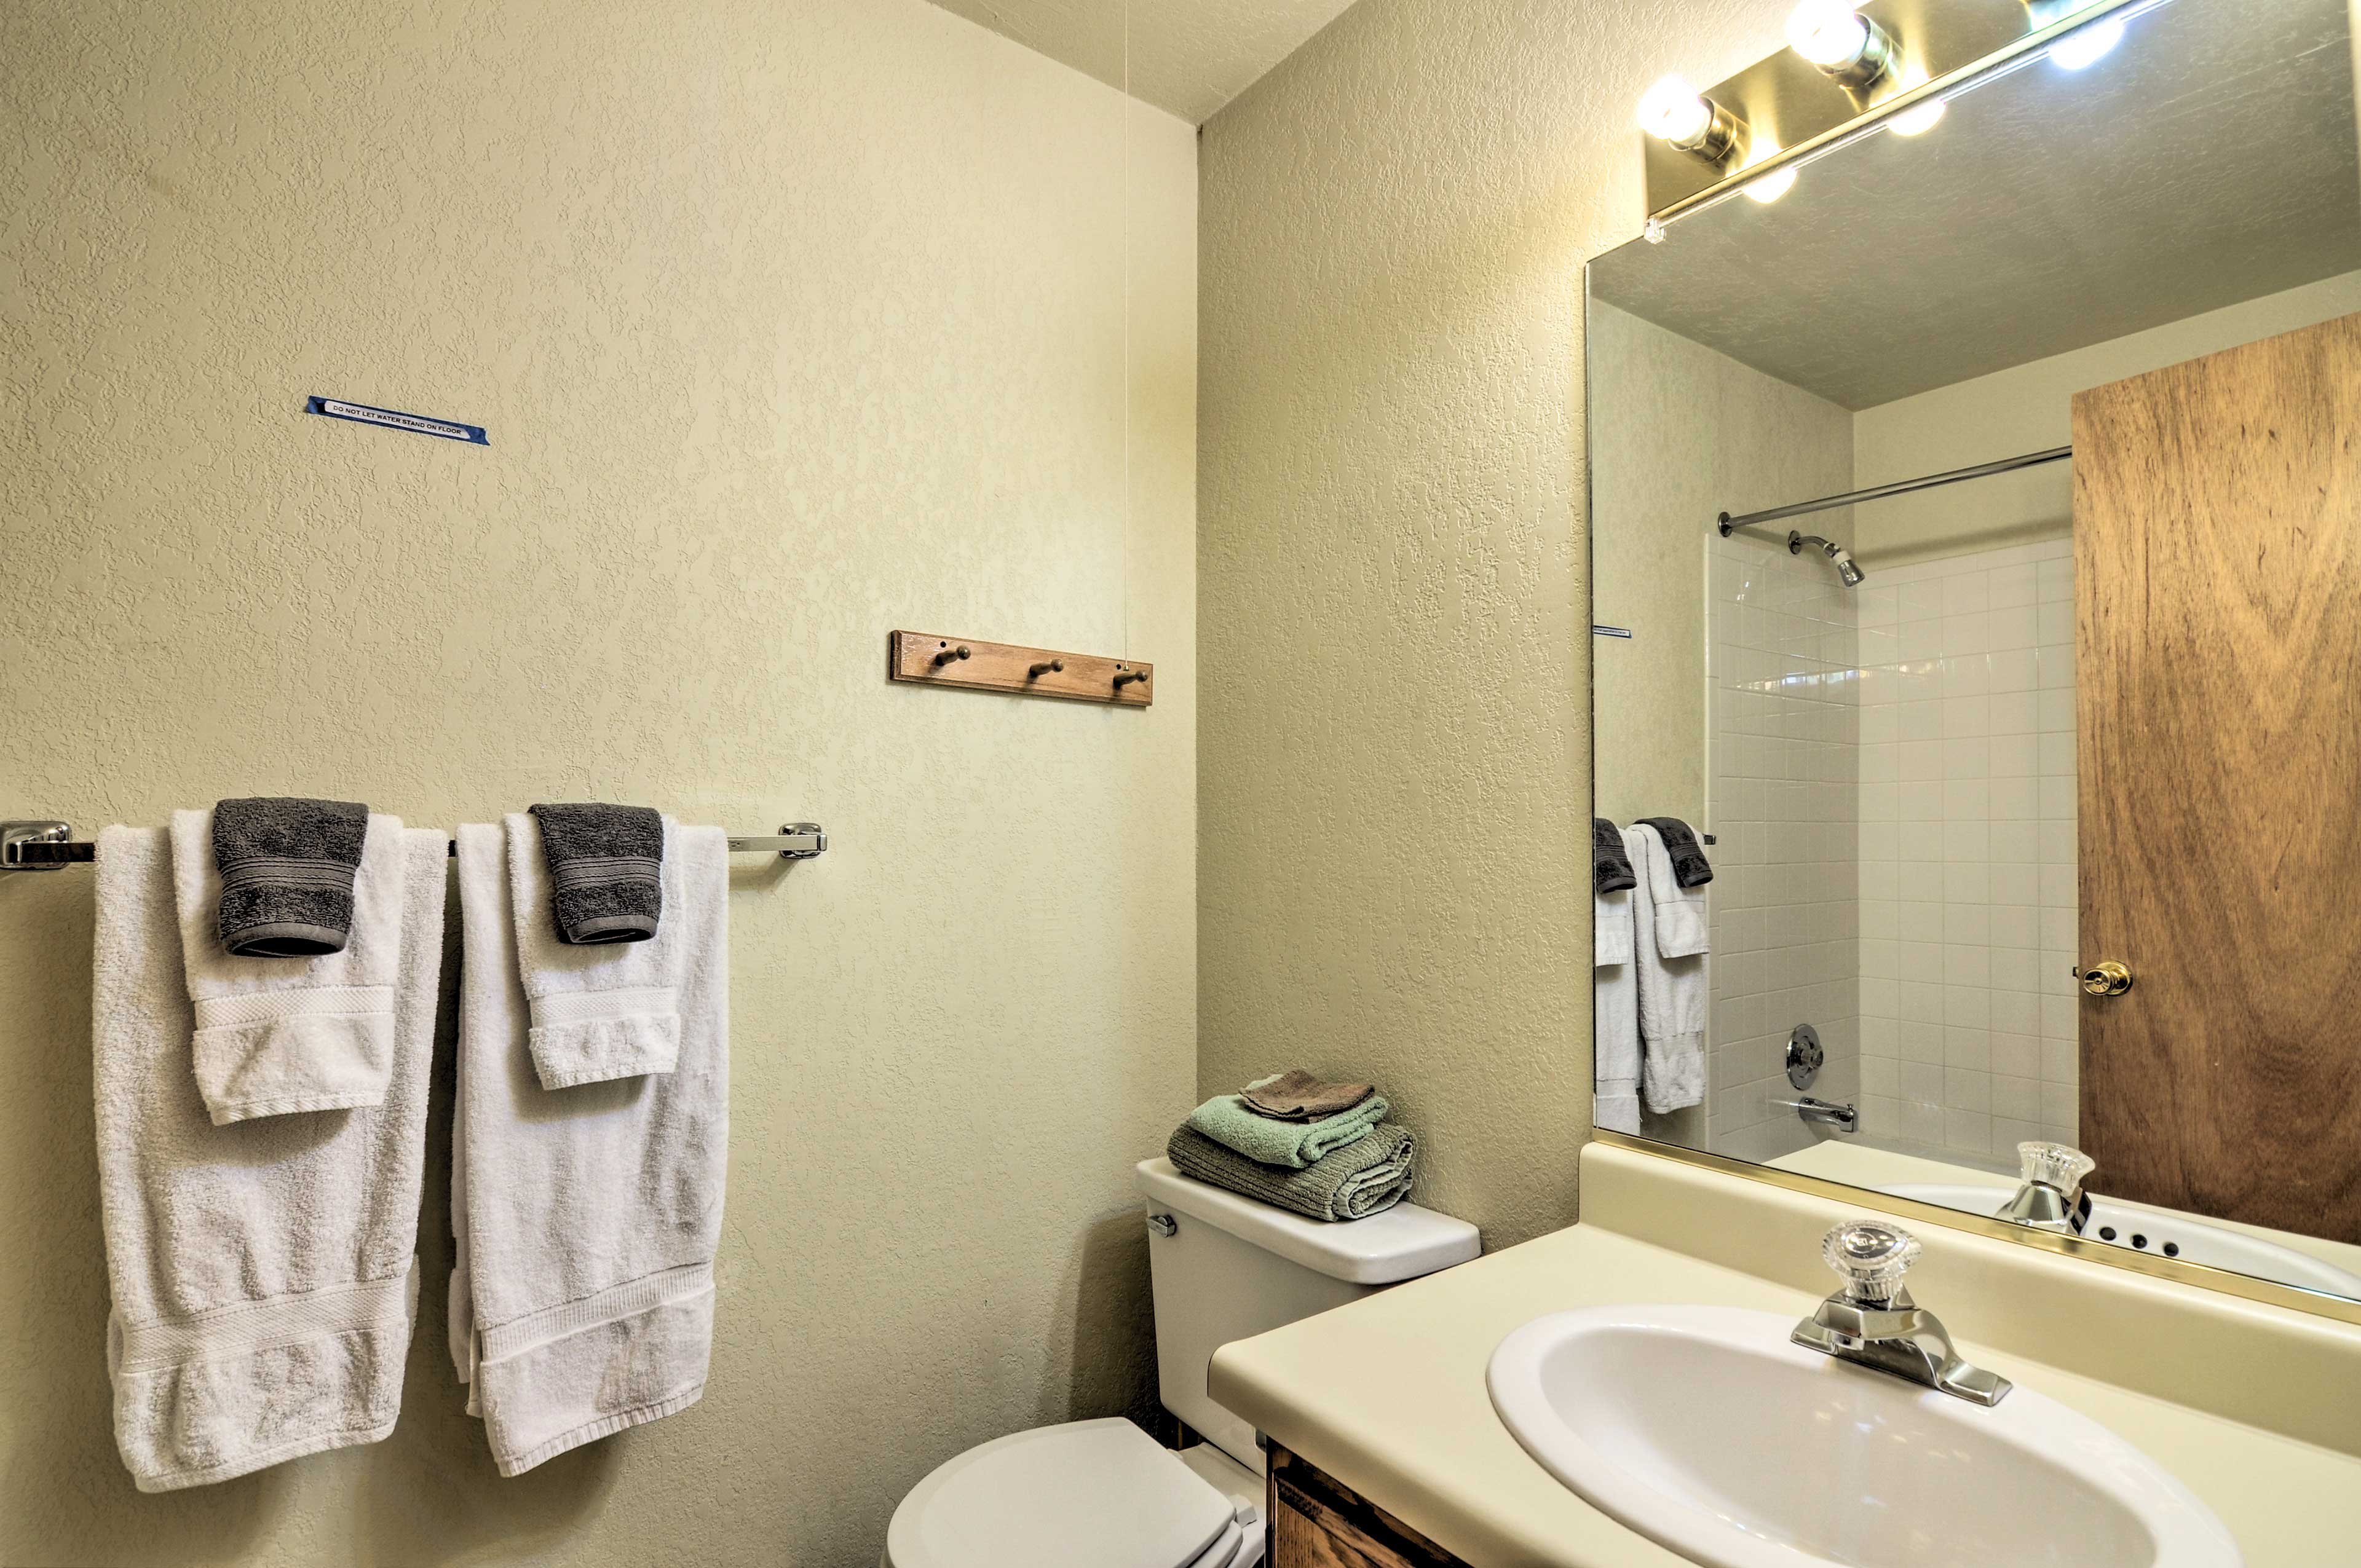 Fresh linens and towels are provided for your stay.